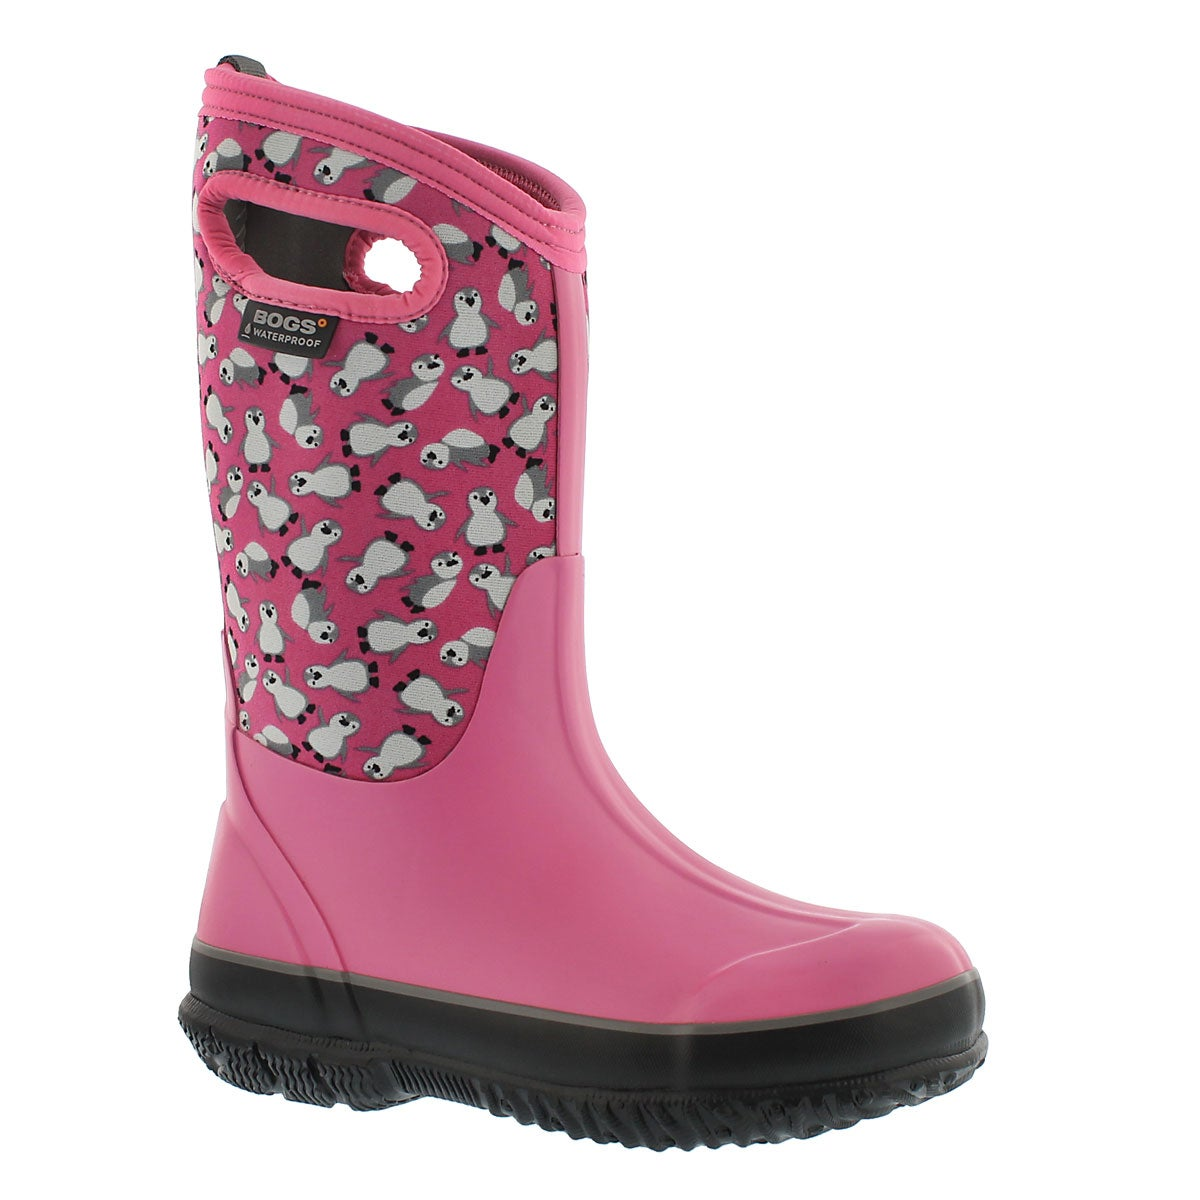 Girls' CLASSIC PENGUINS pnk mlti waterproof boots